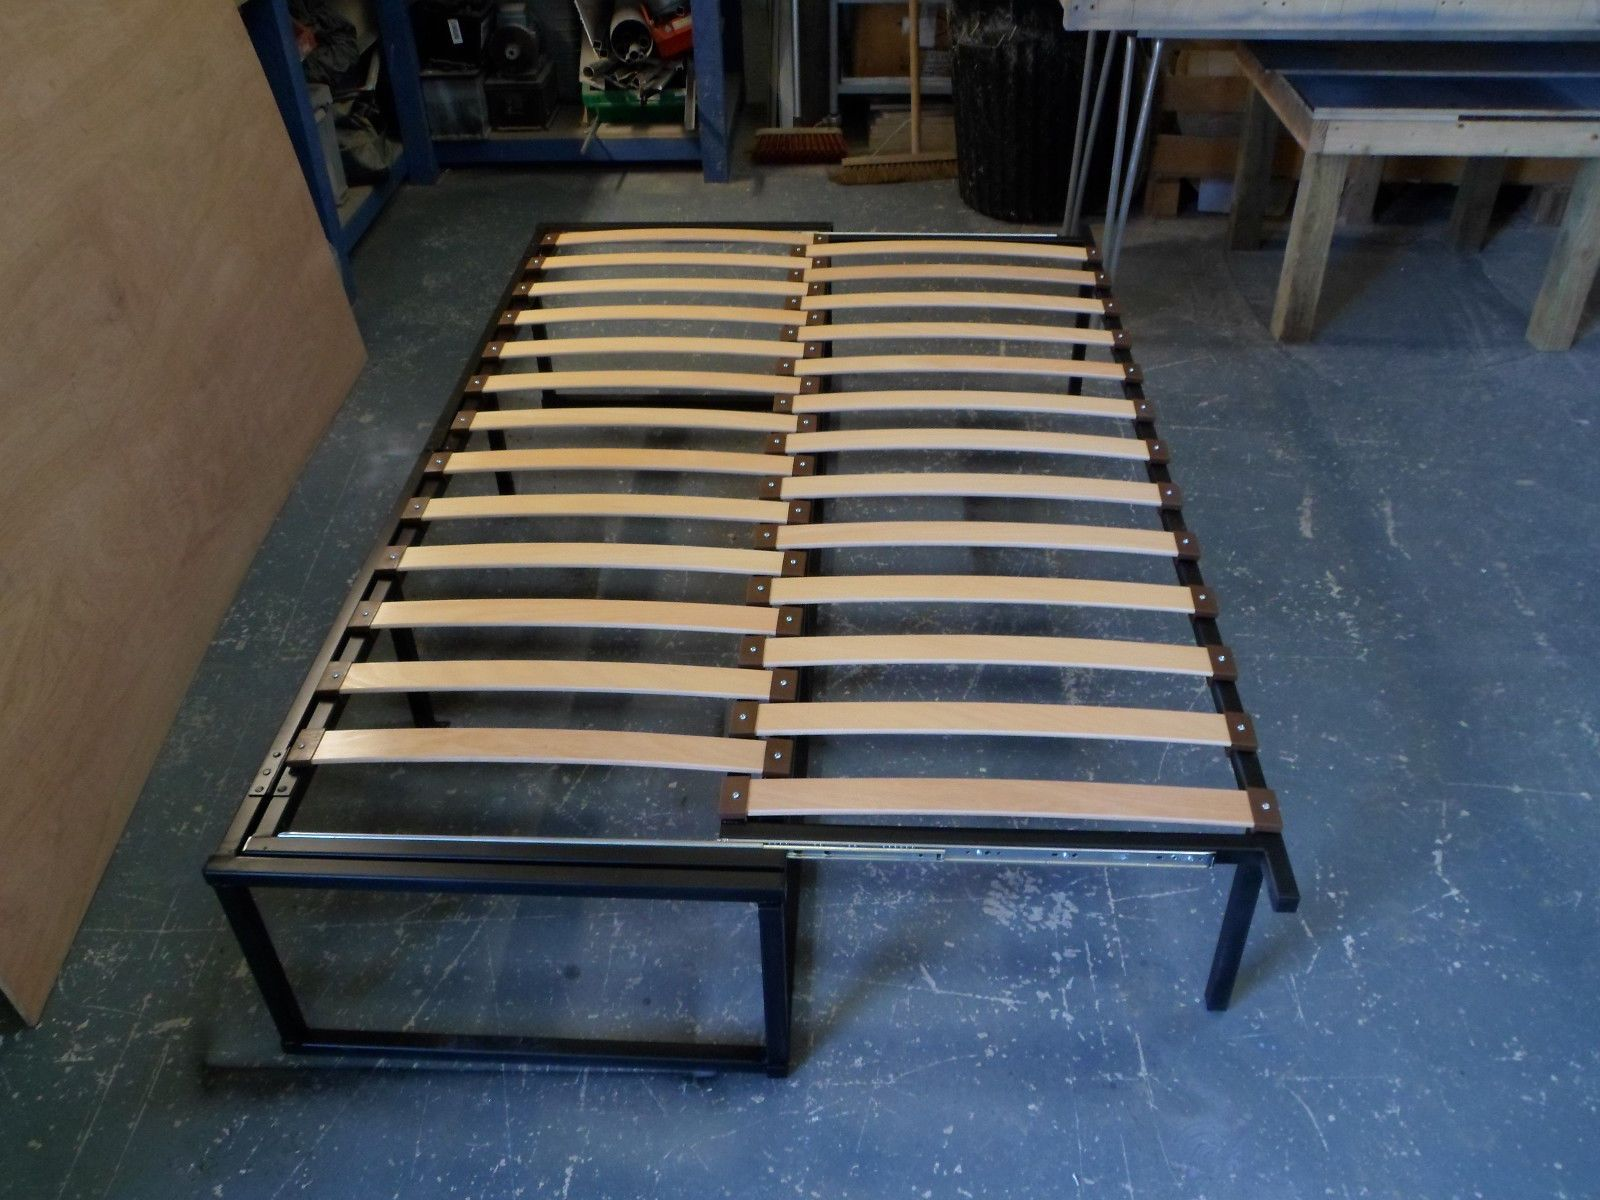 How To Build A Pull Out Slat Bed For Van Bed Slats Pull Out Bed